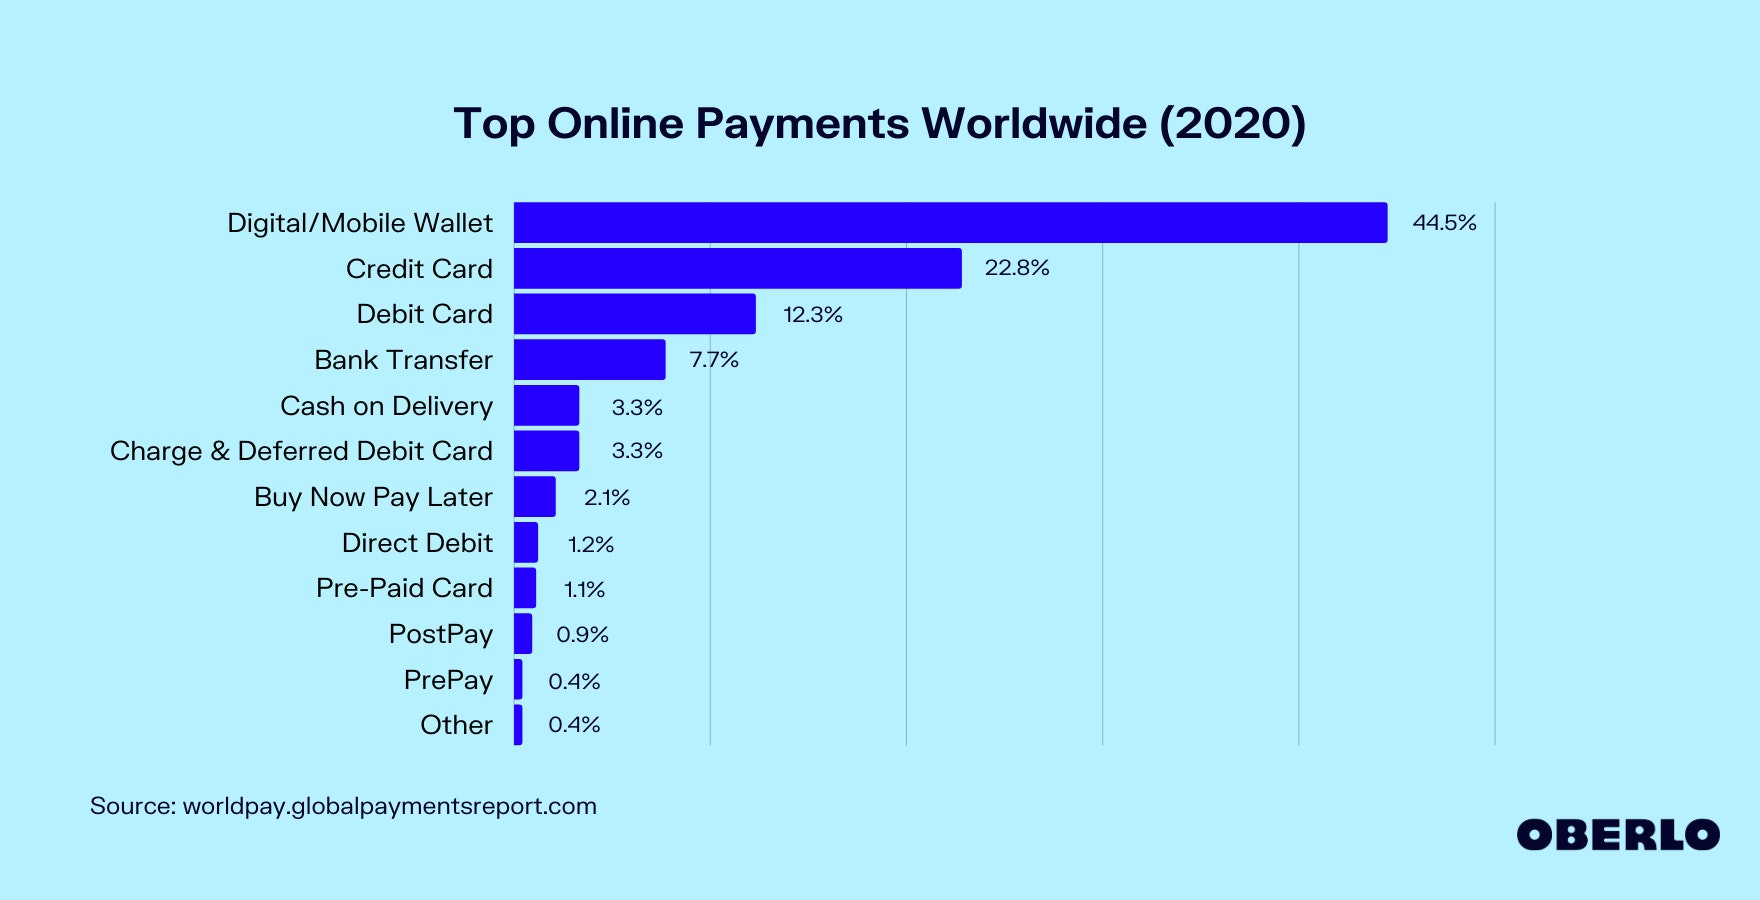 Top Online Payments Worldwide (2020) Graphic